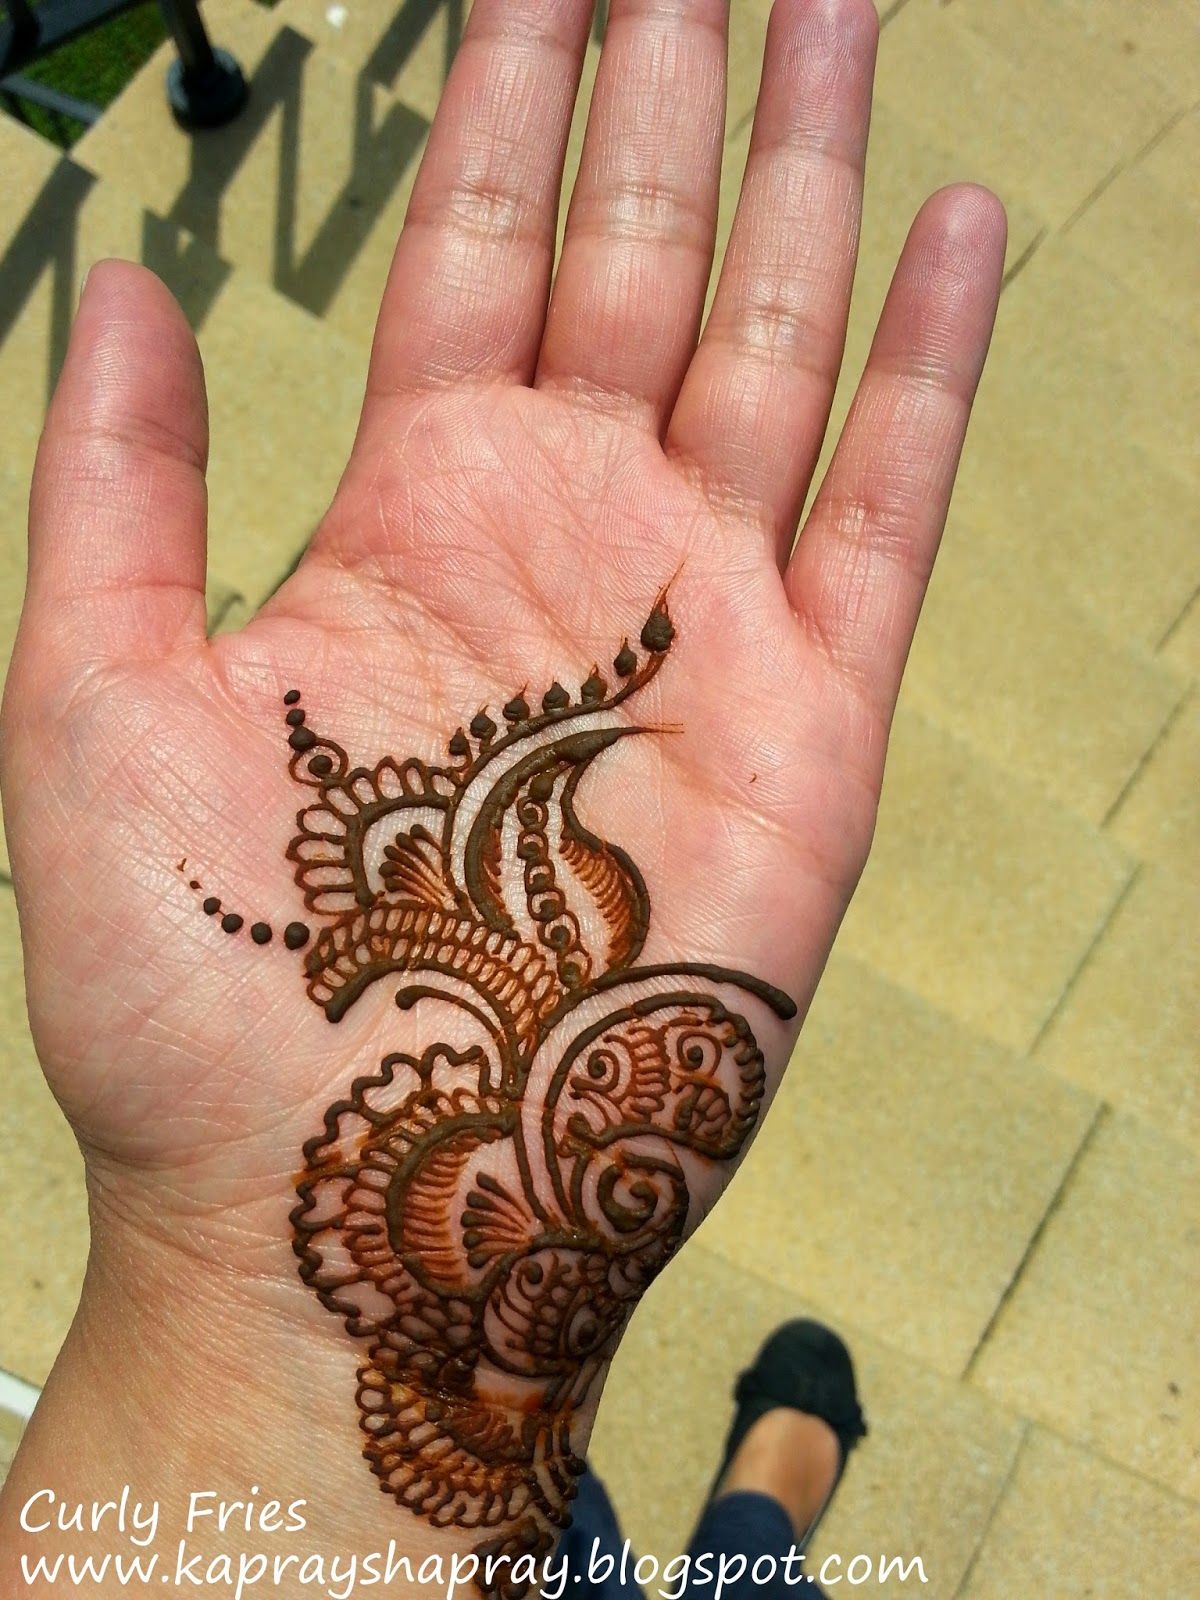 Curly Fries THE WEDDING POSTS My Mehndi Trial